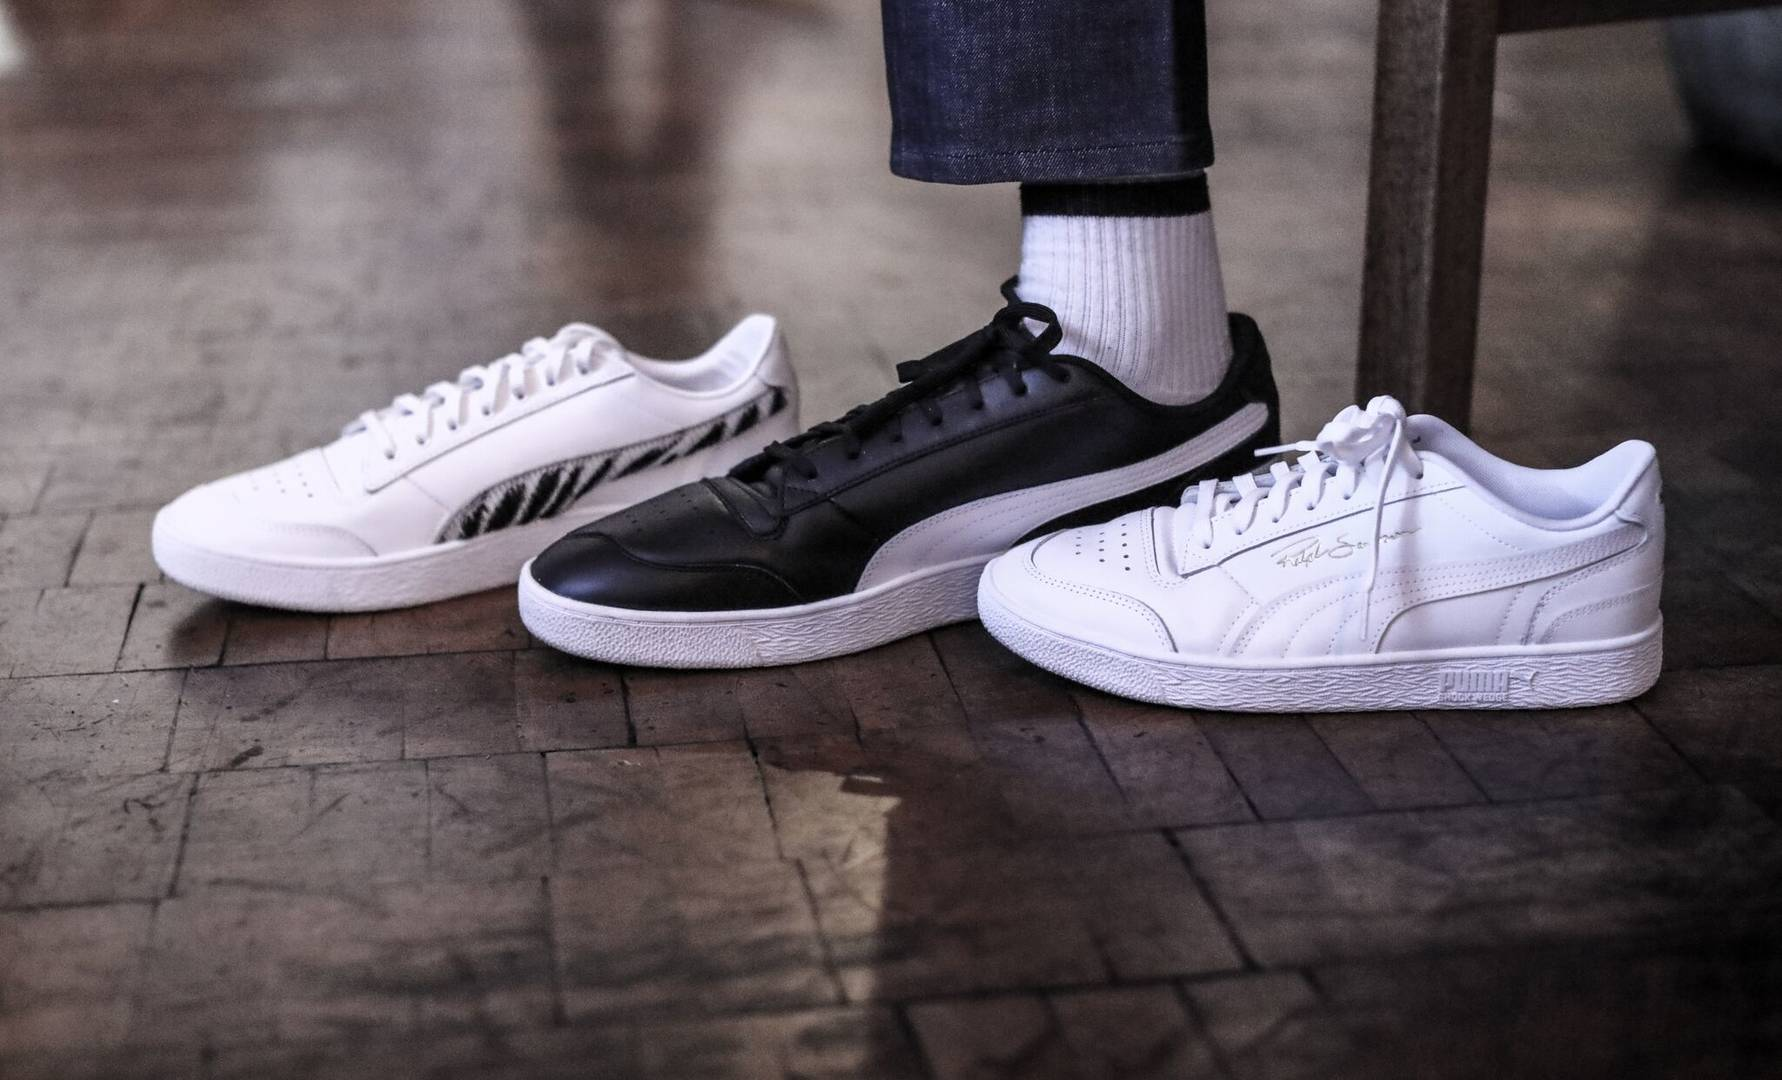 G-Eazy Partners With PUMA To Release His Own Shoe